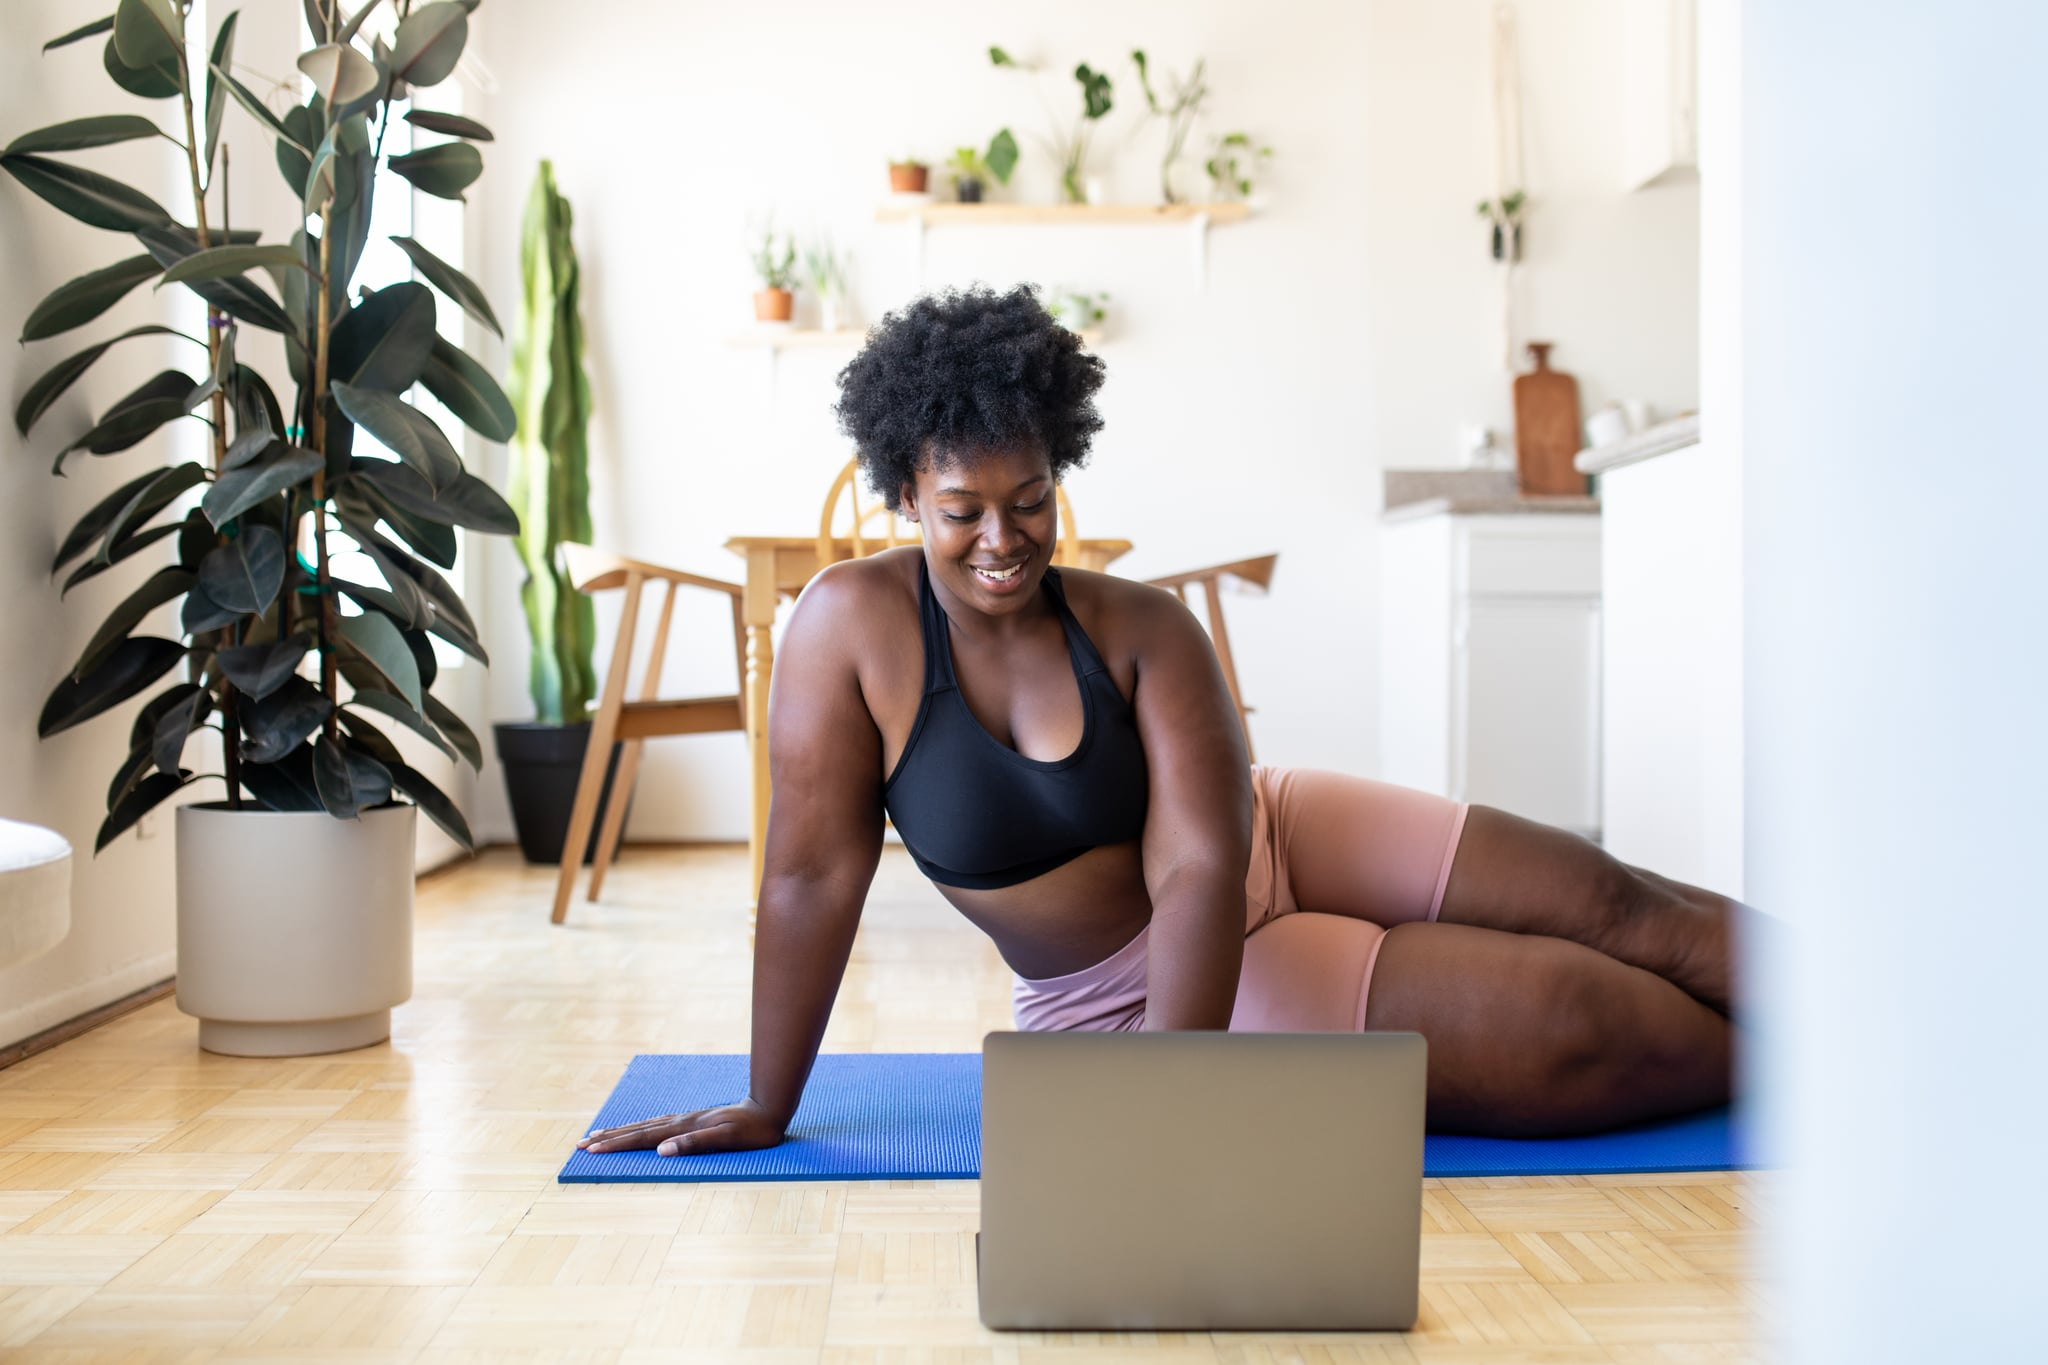 Woman in sportswear using laptop at home. Young woman searching for online exercise tutorials on a laptop at home.